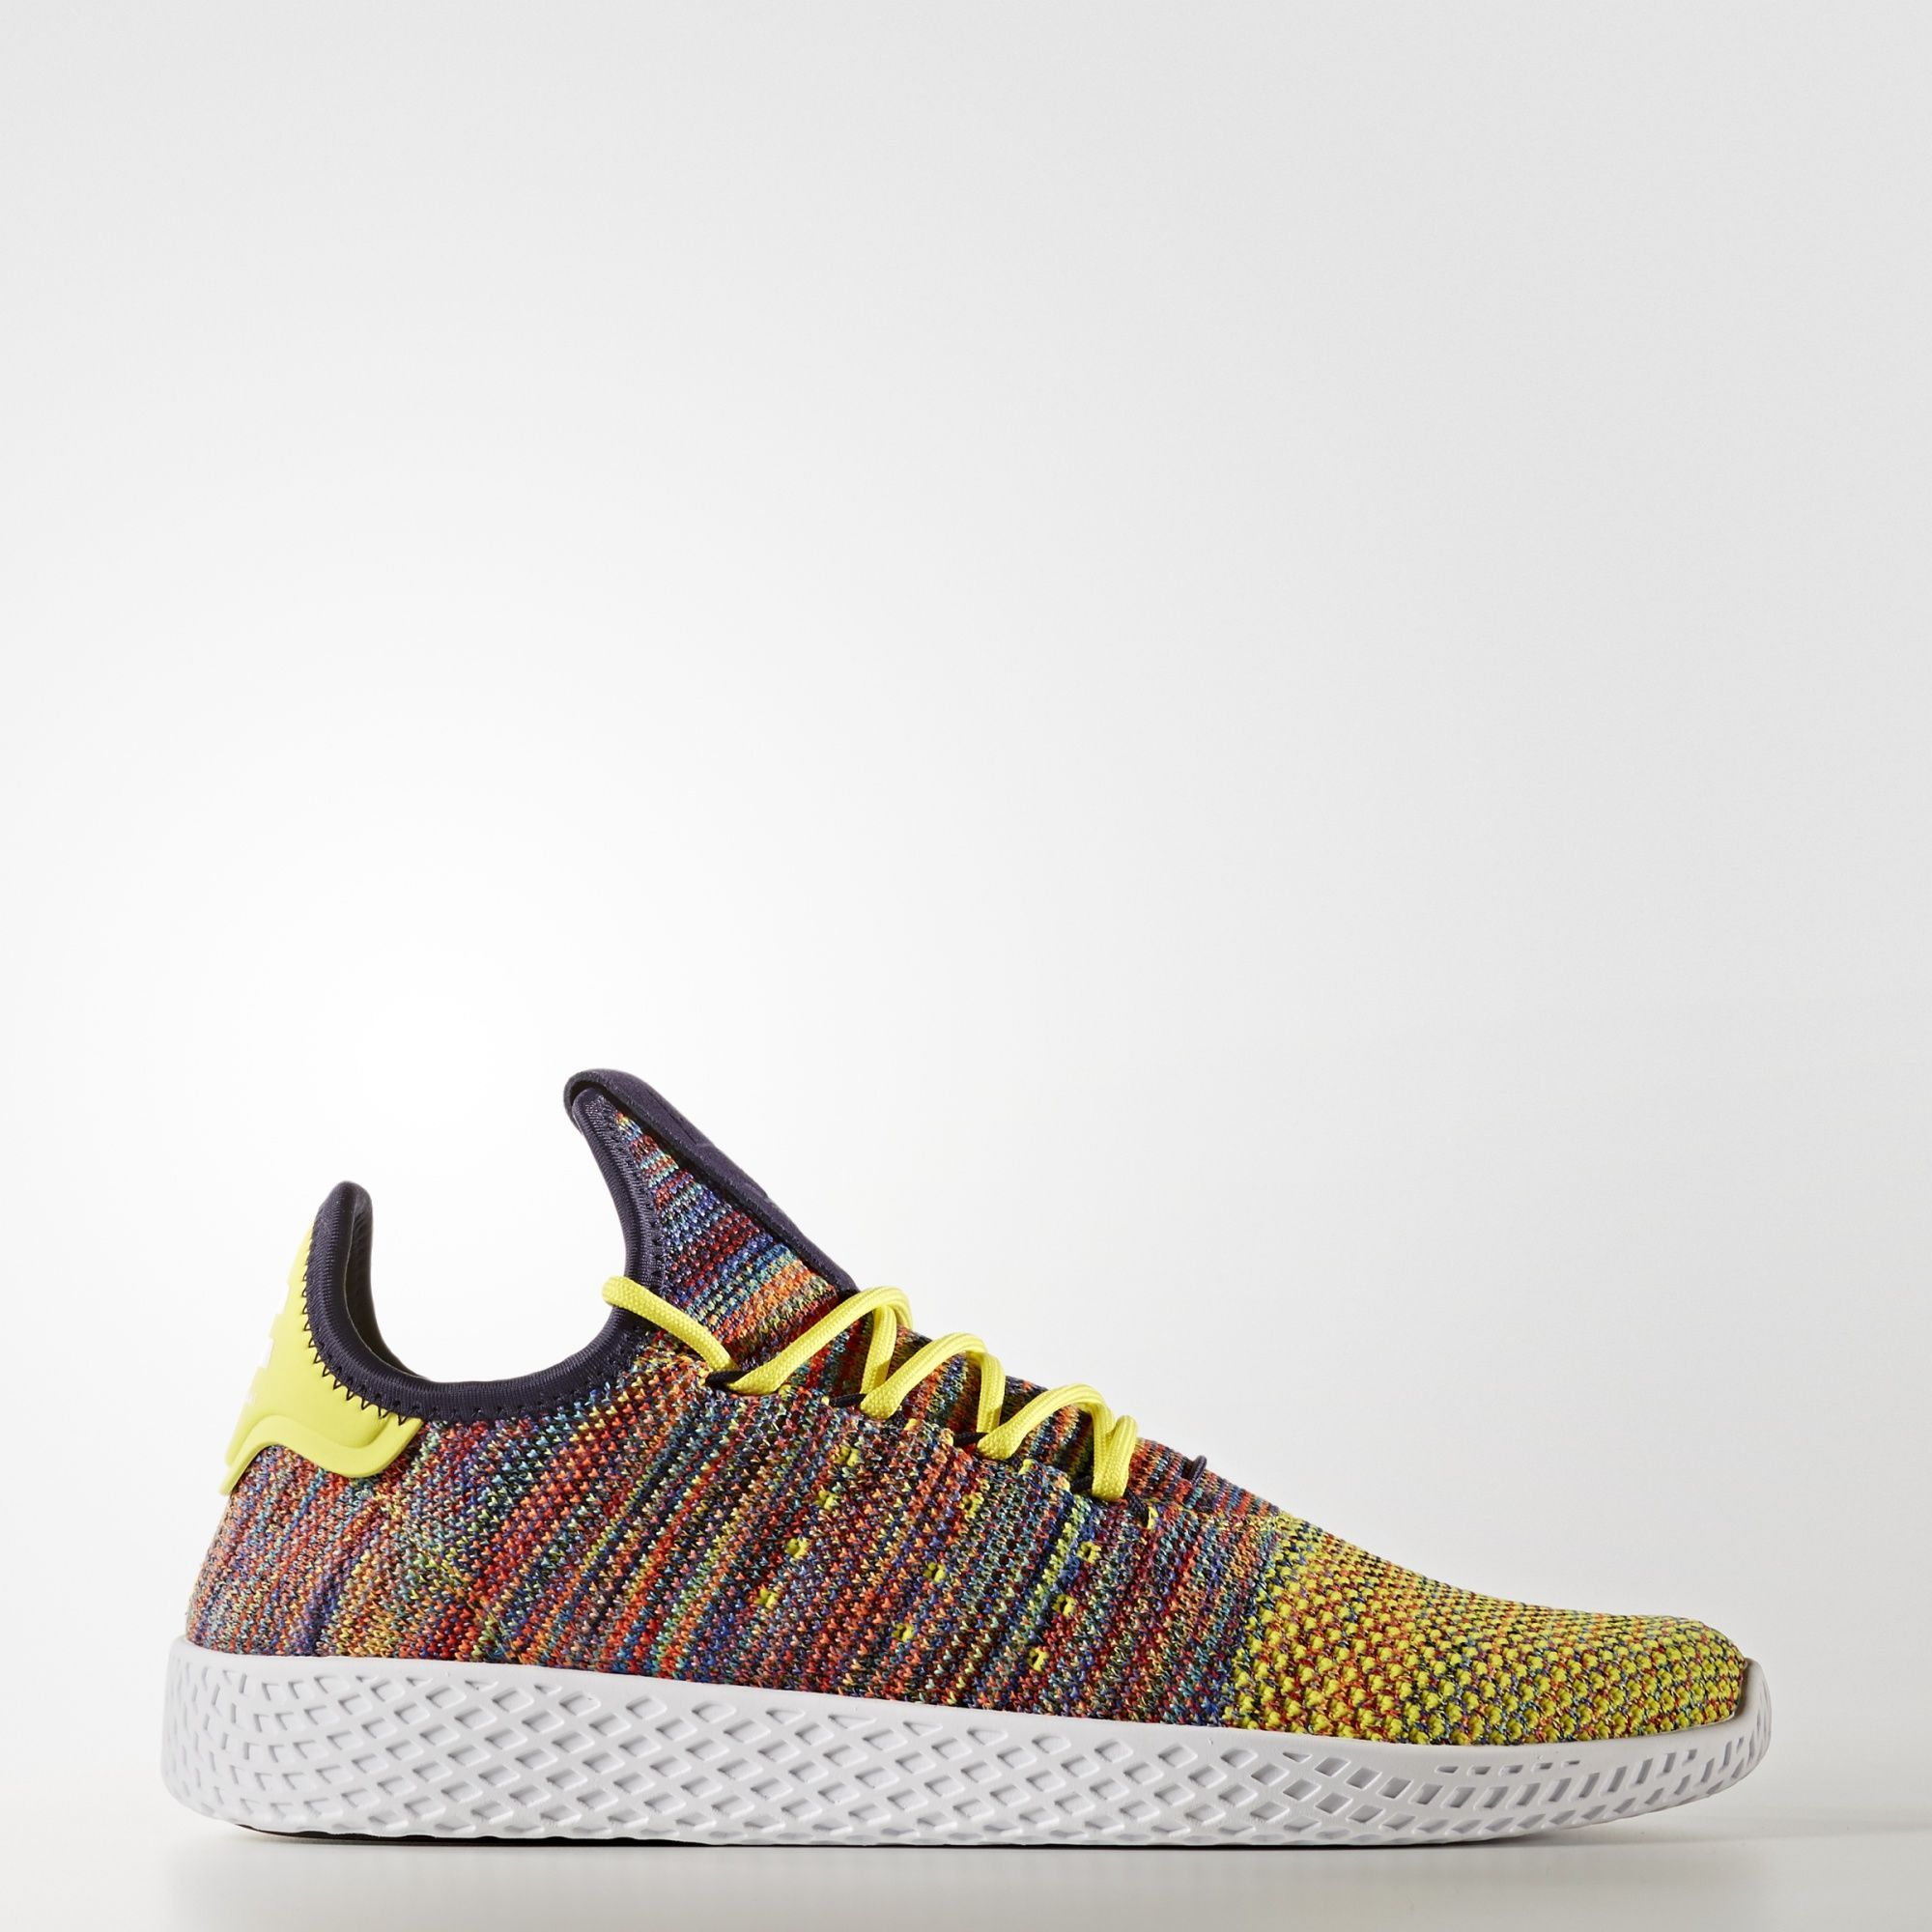 Adidas pharrell williams tennis zapatos hu scarpe zapatos tennis pinterest 35da41